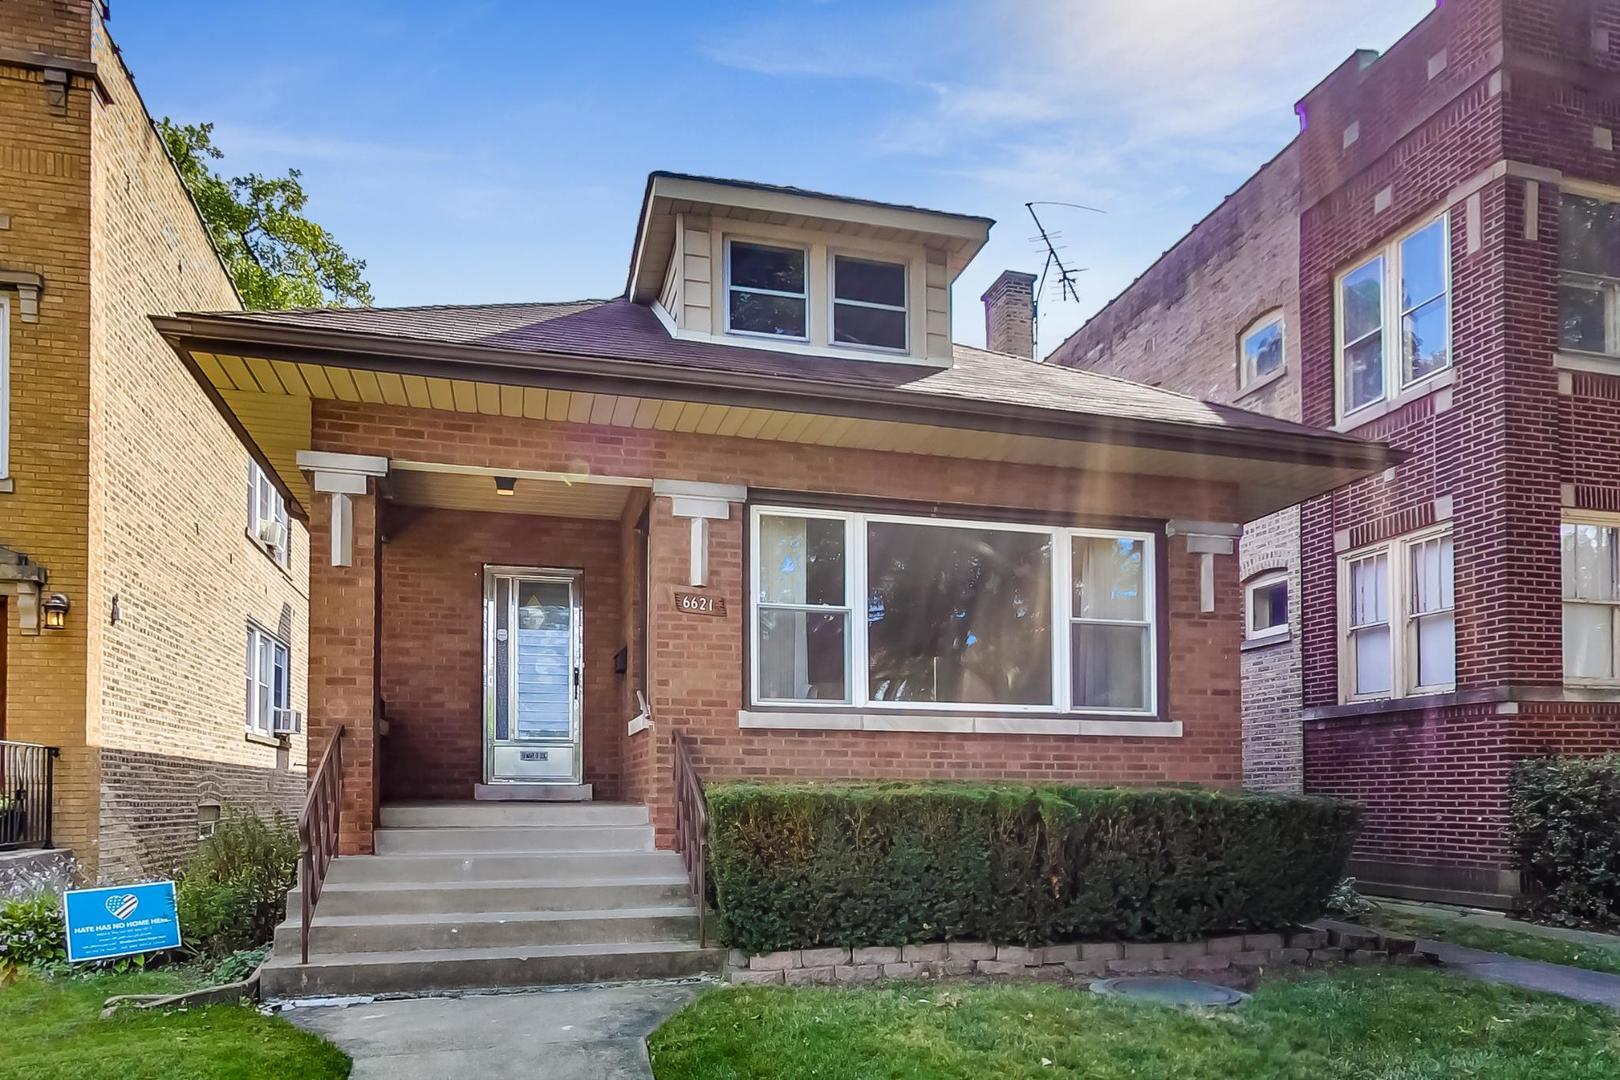 6621 N Rockwell Street, Chicago, IL 60645 - #: 10838466